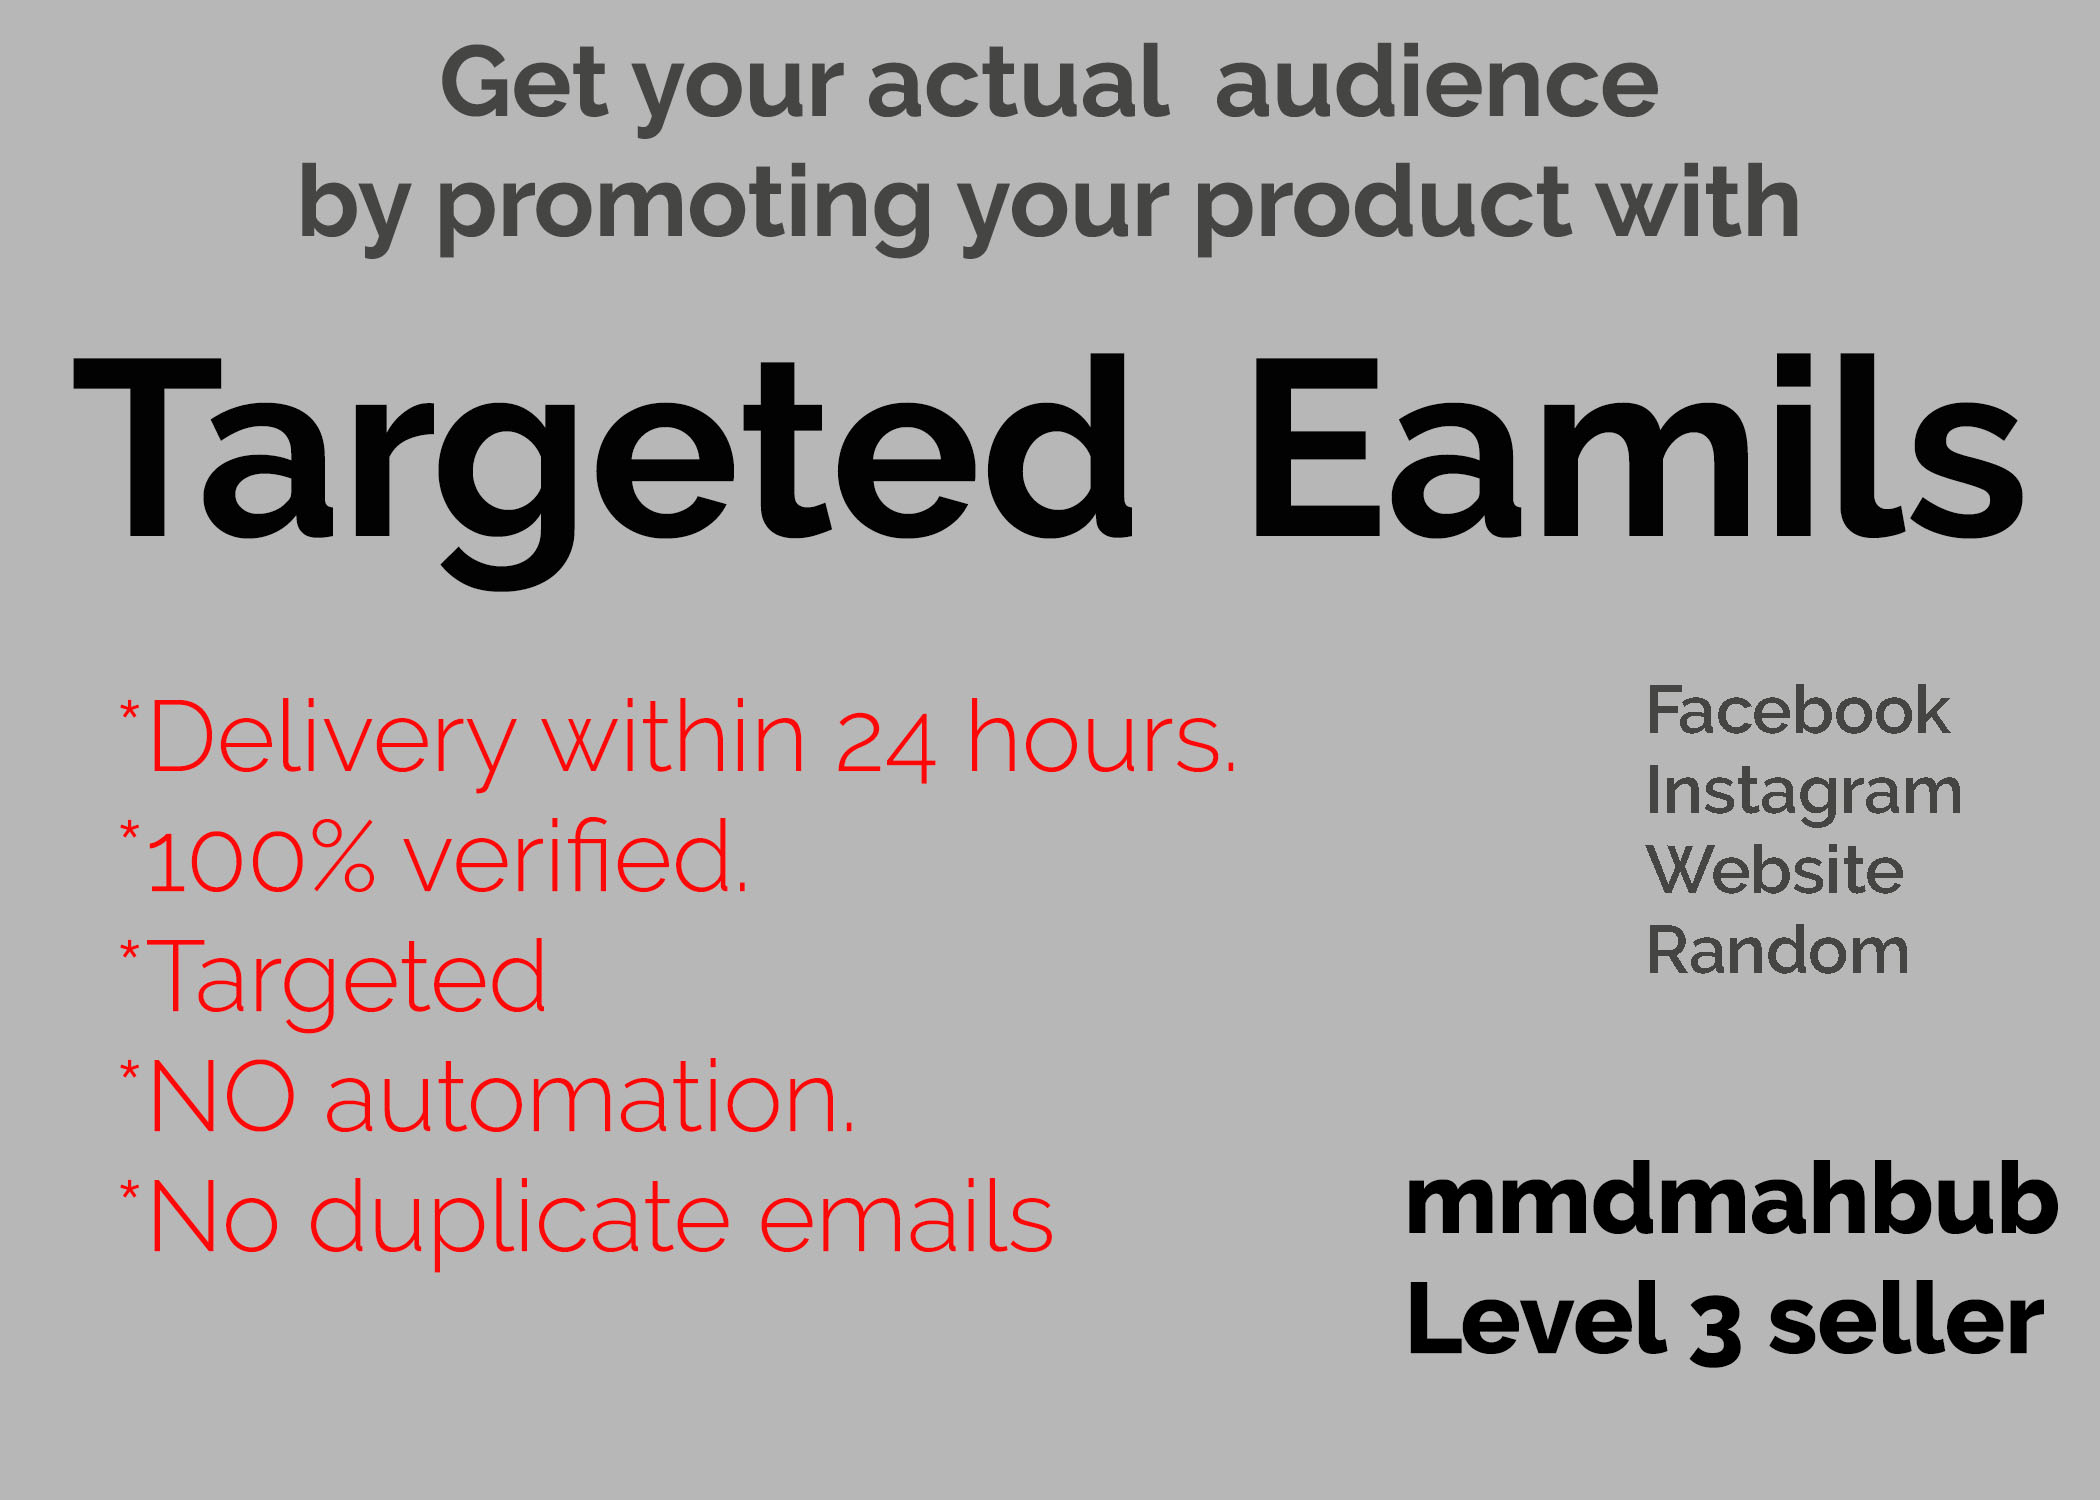 Validate your Own Email leads as much as you want within 24 hours